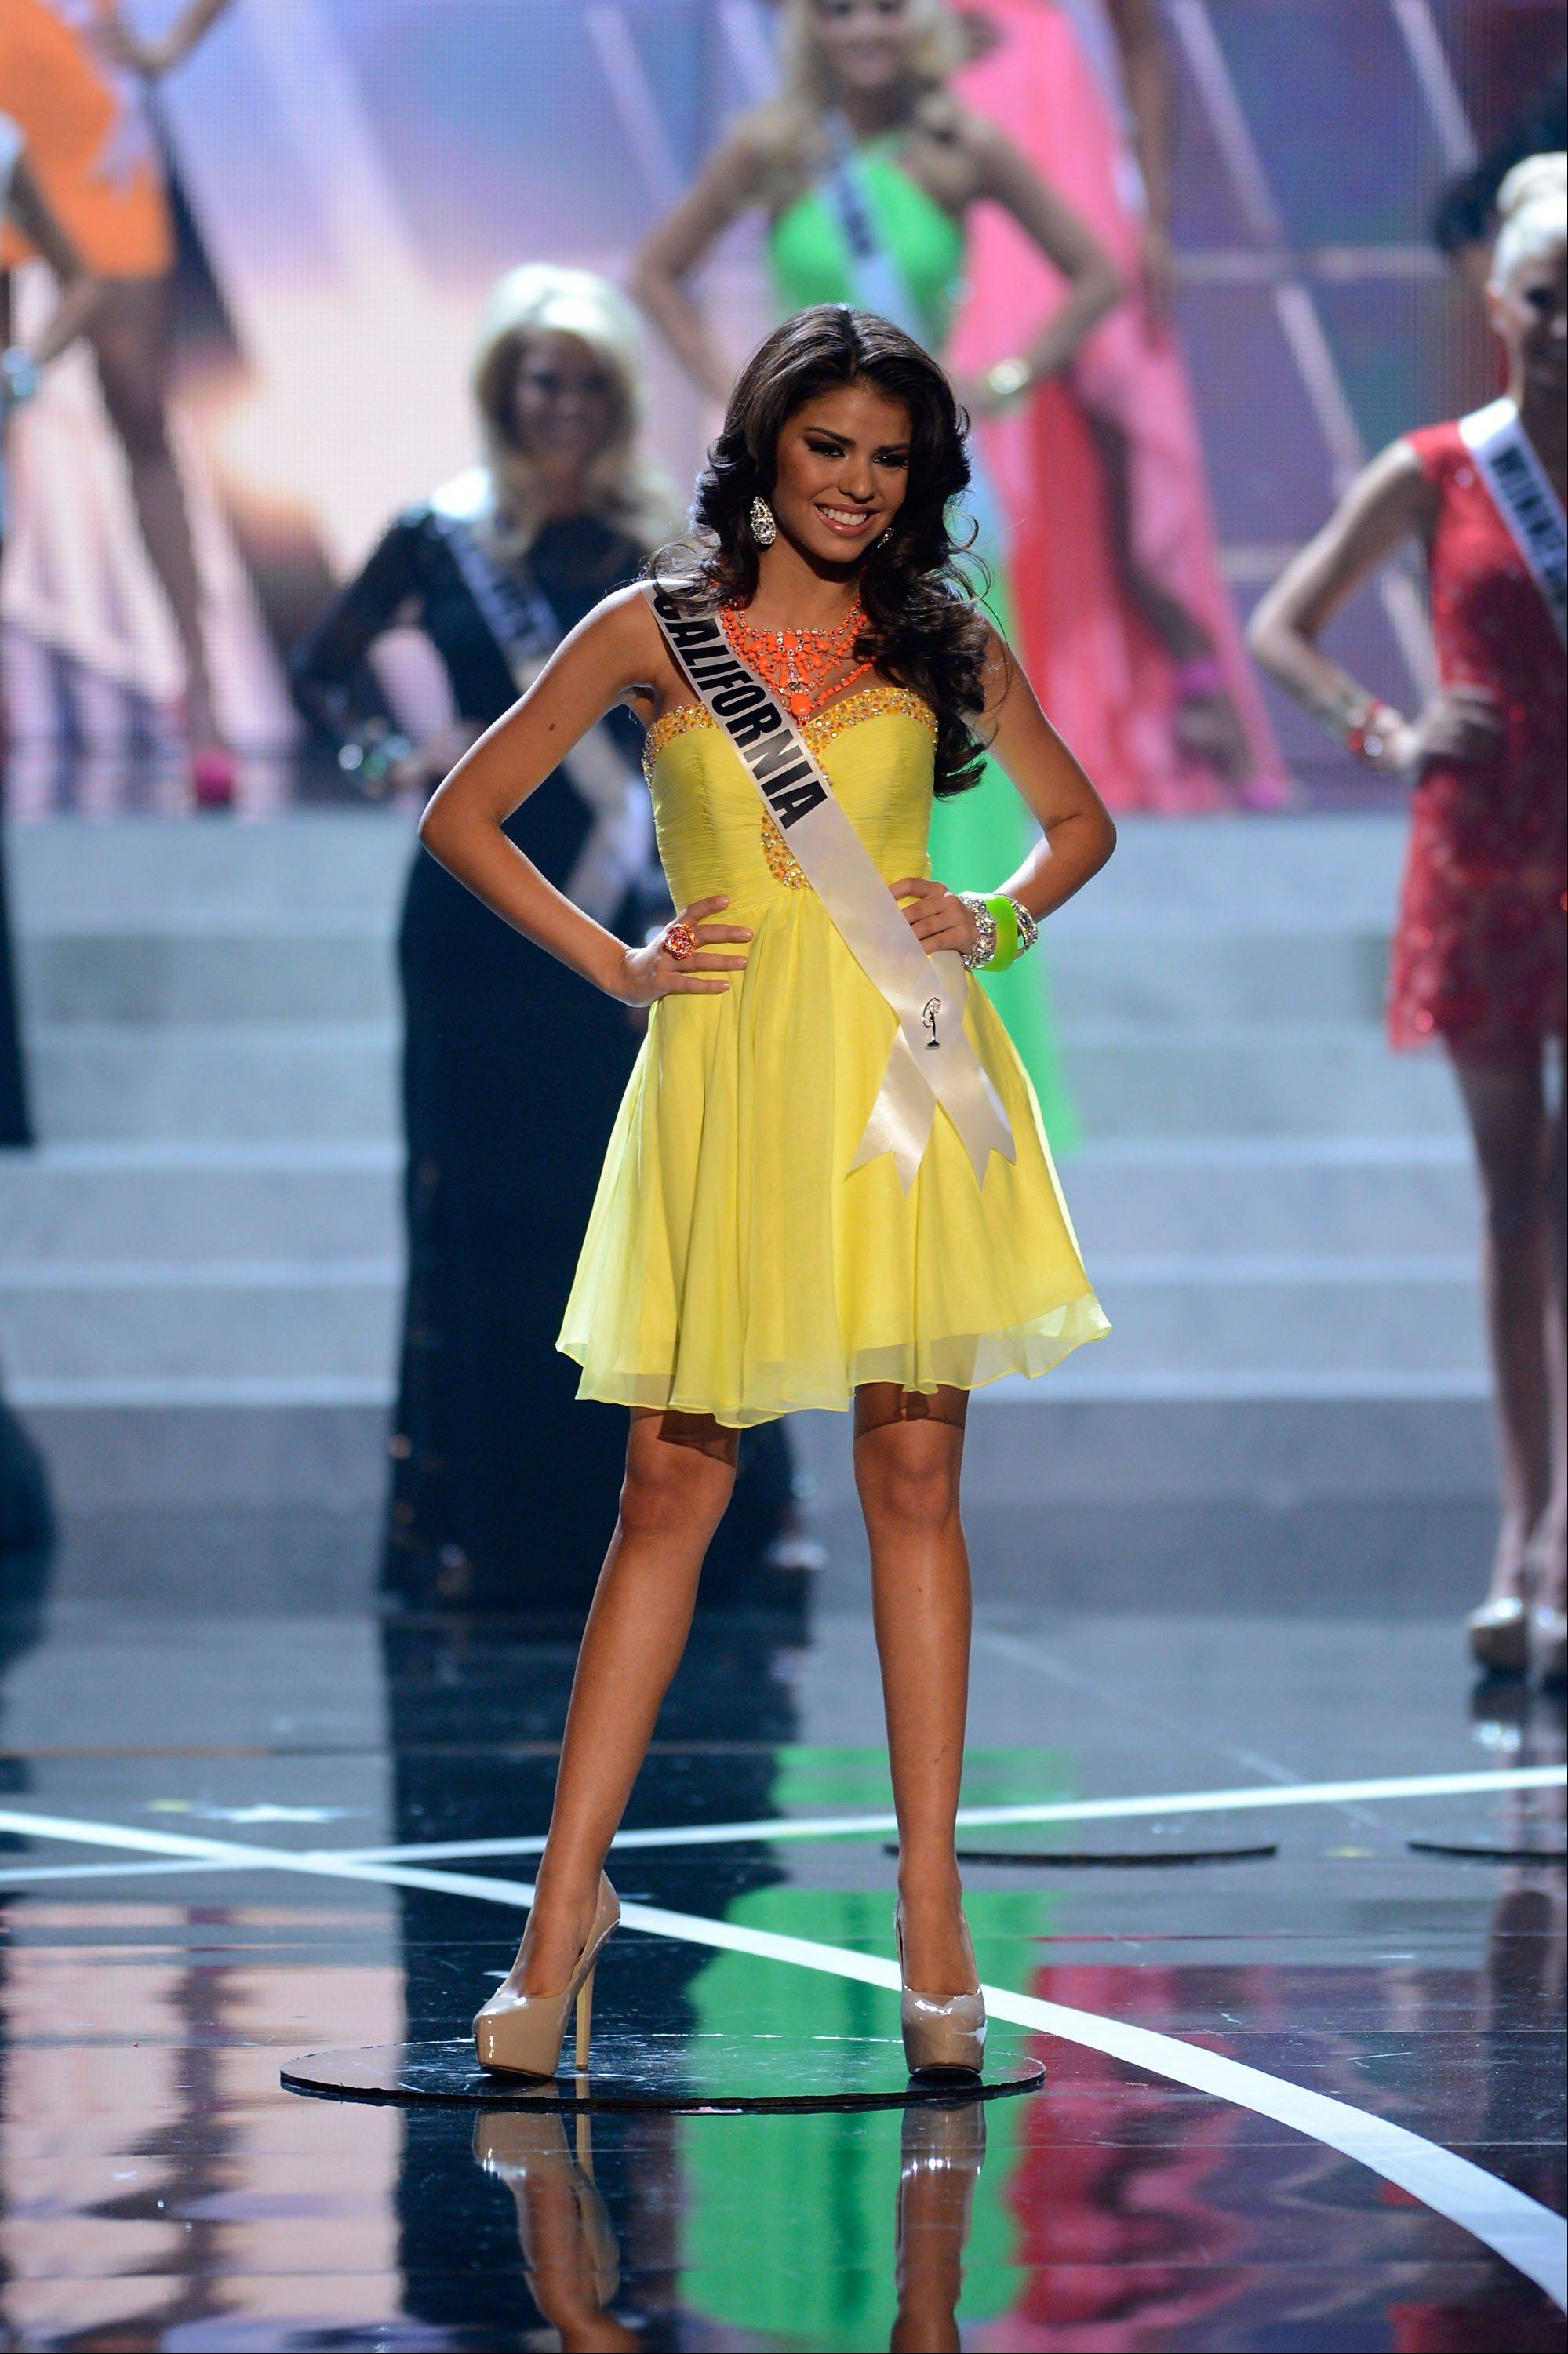 Miss California Mabelynn Capeluj from Wildomar walks the runway during the introductions of the Miss USA 2013 pageant, Sunday, June 16, 2013, in Las Vegas.